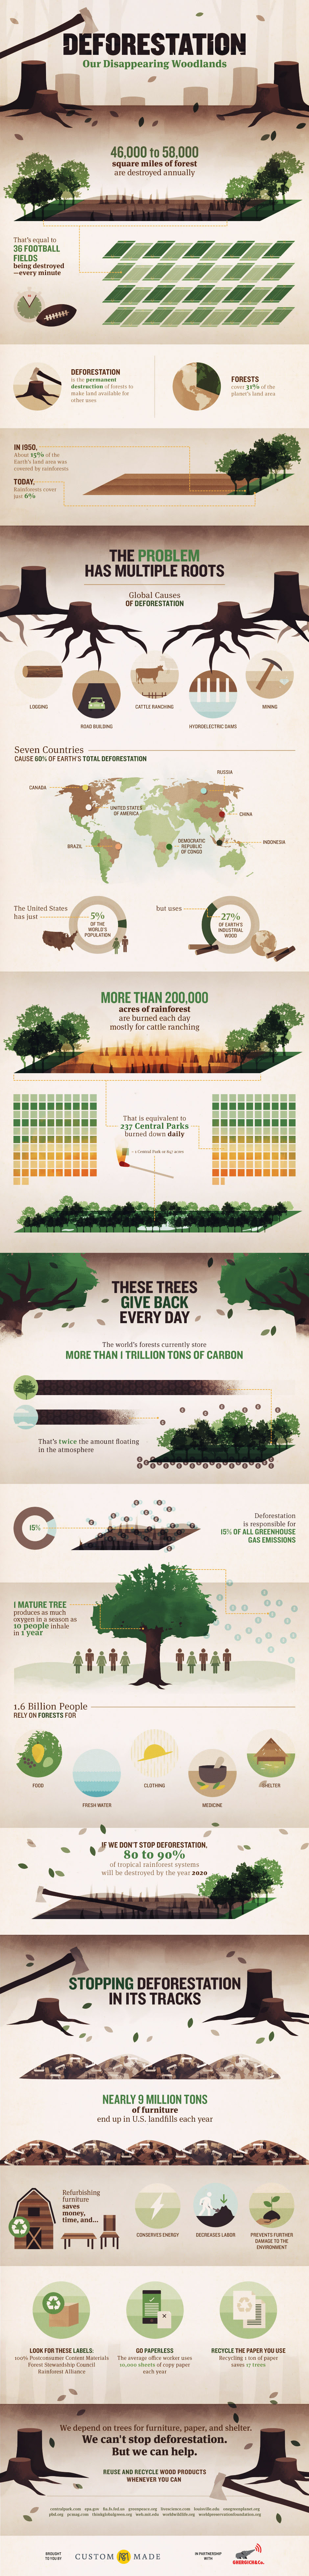 Deforestation: Our Disappearing Woodlands | CustomMade.com